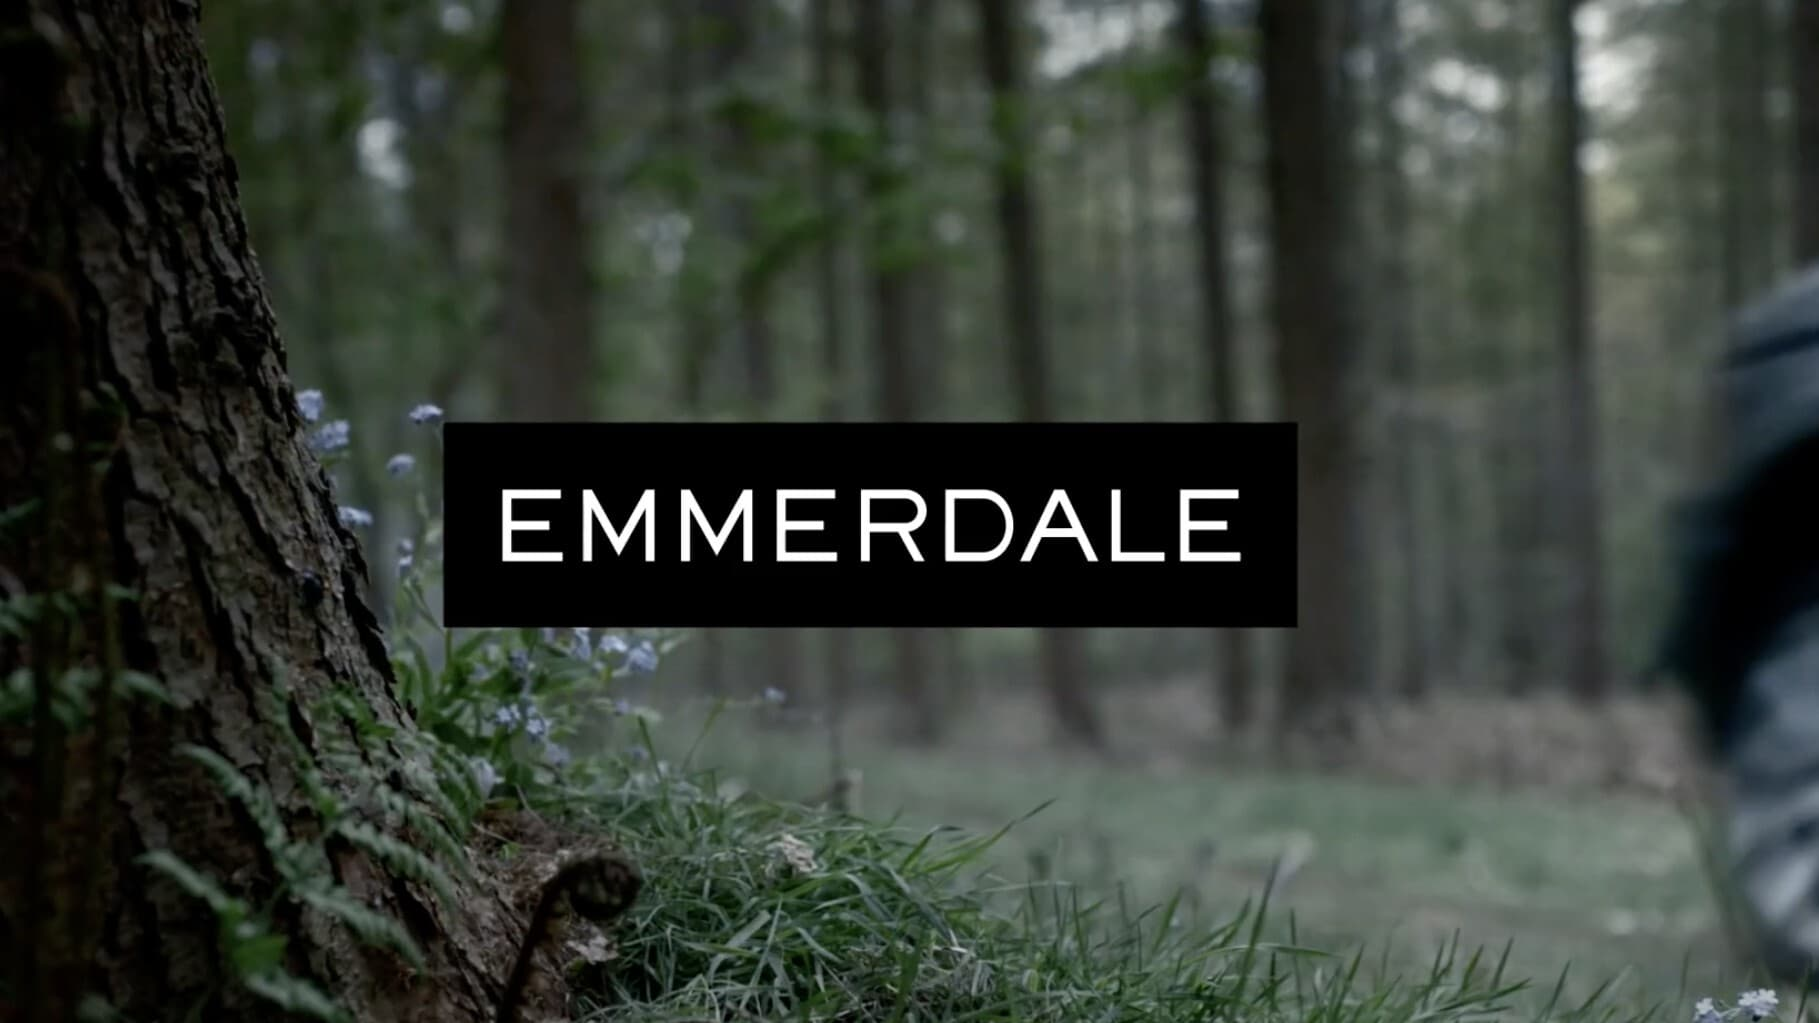 Emmerdale - Season 46 Episode 208 : Wednesday 14th August 2019